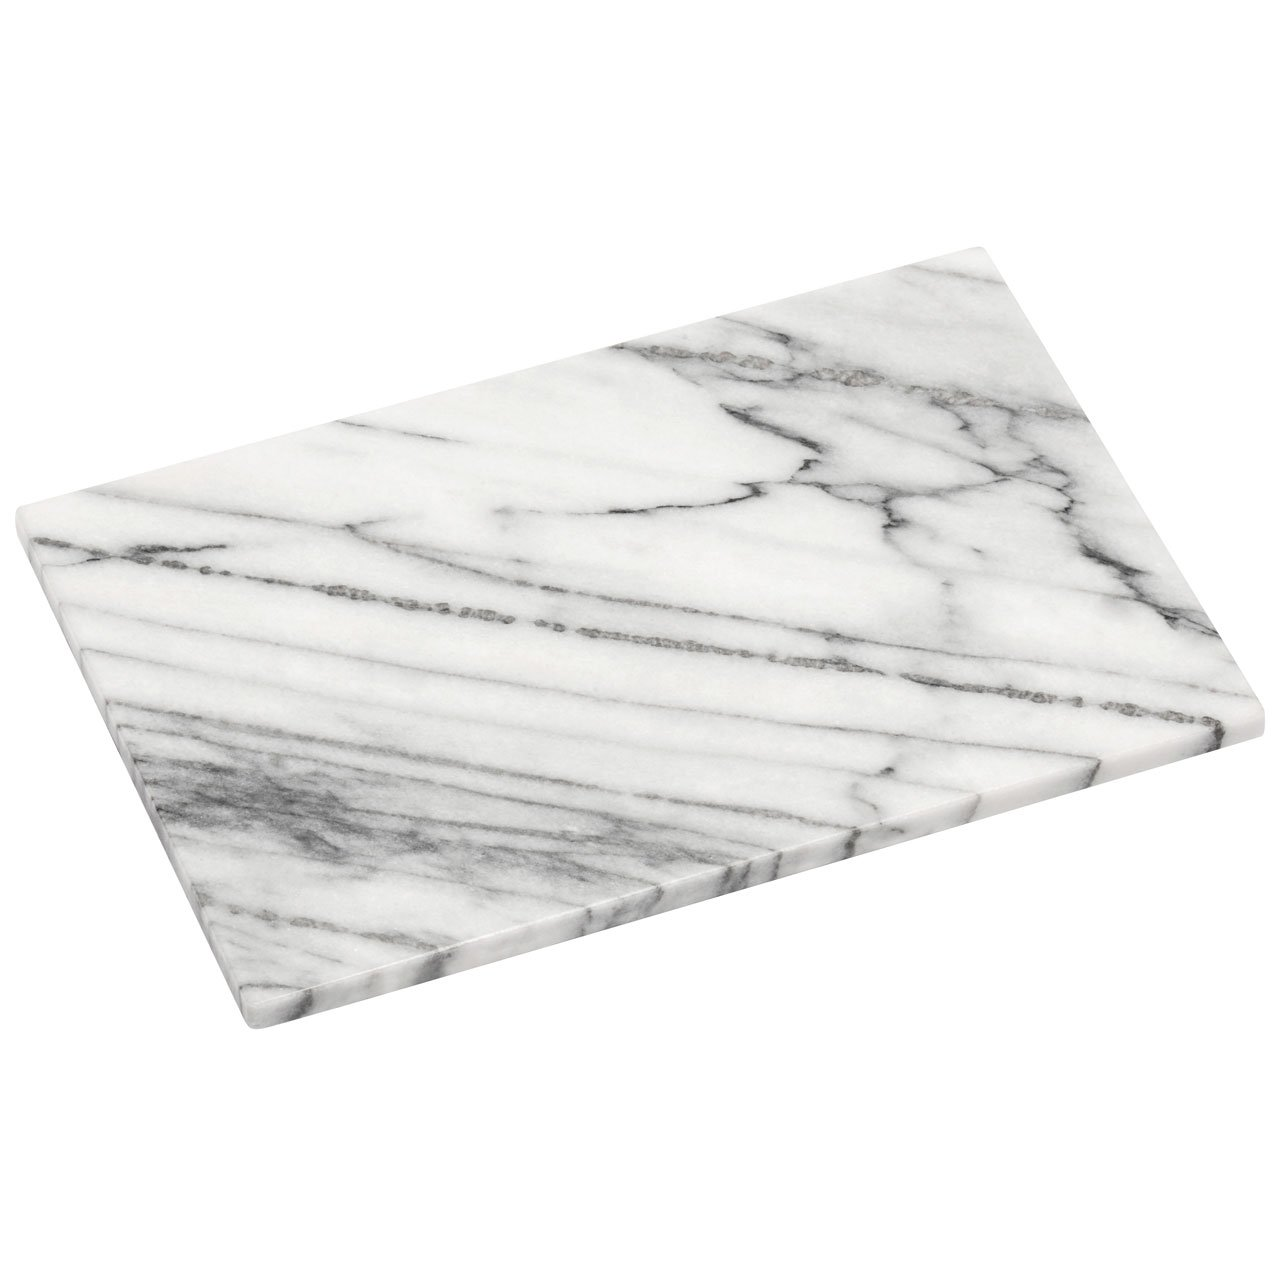 Extra Large Heavy Marble Pastry Board / Chopping Board by verygoodbuys